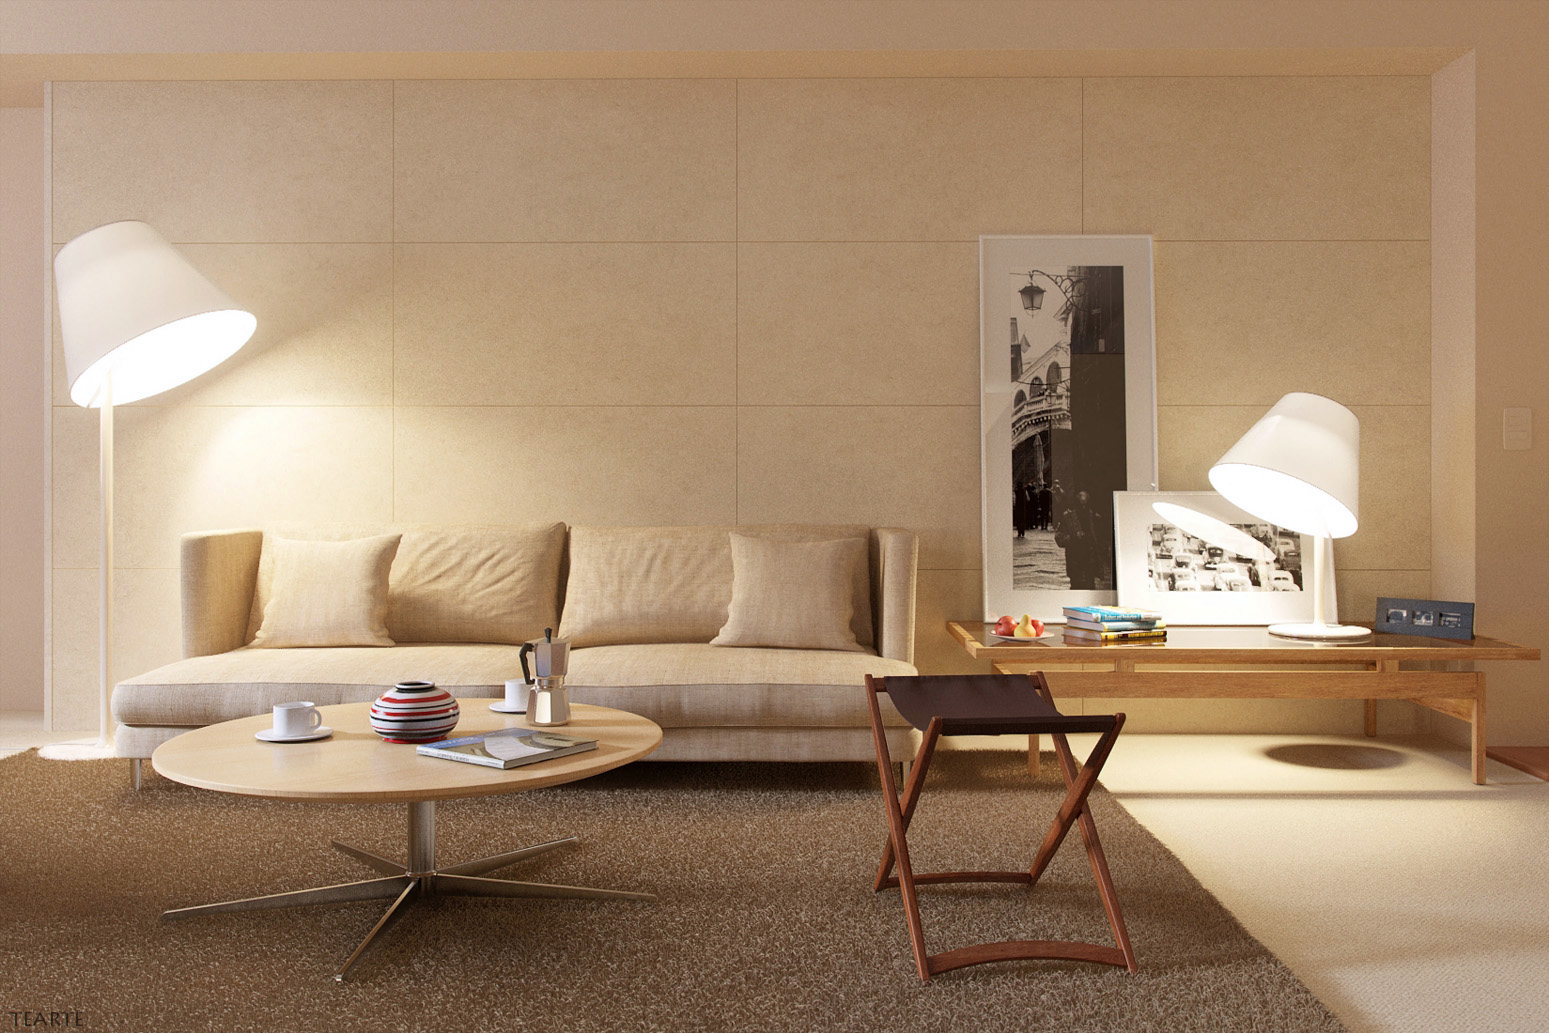 Sumptuous Living Space Furniture With Sofa also Round Coffee Table